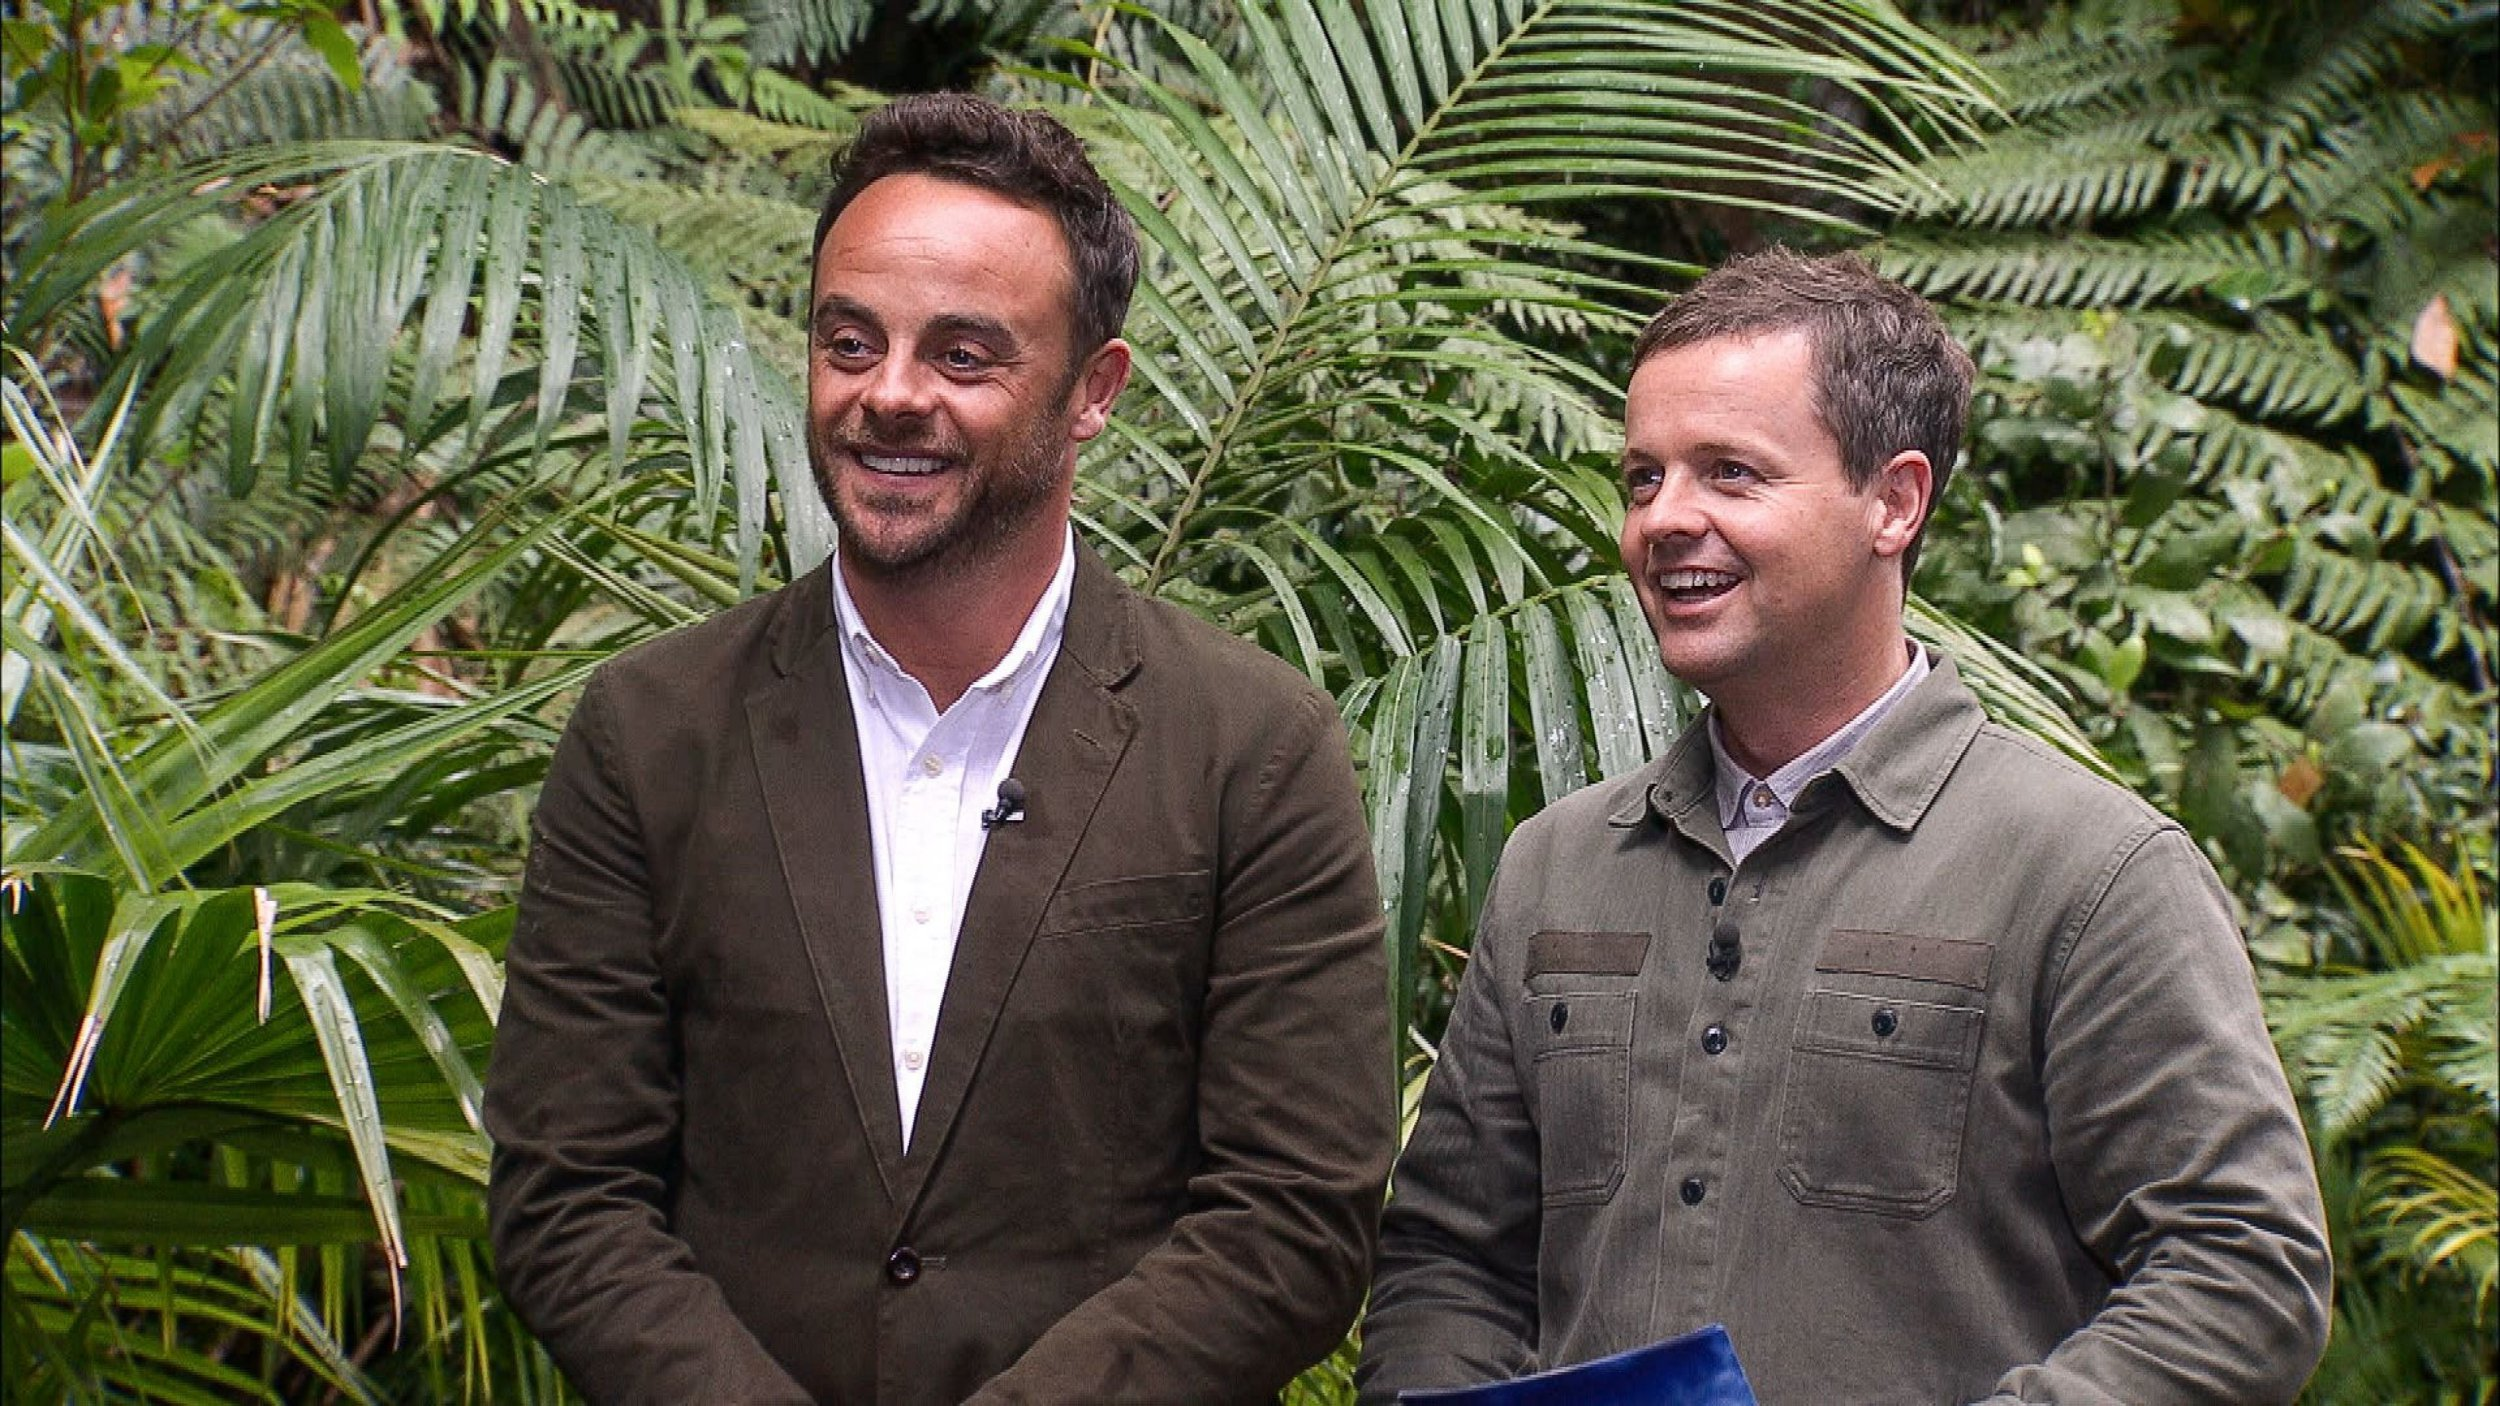 Ant McPartlin will not host I'm A Celebrity… Get Me Out Of Here! as he recovers from rehab